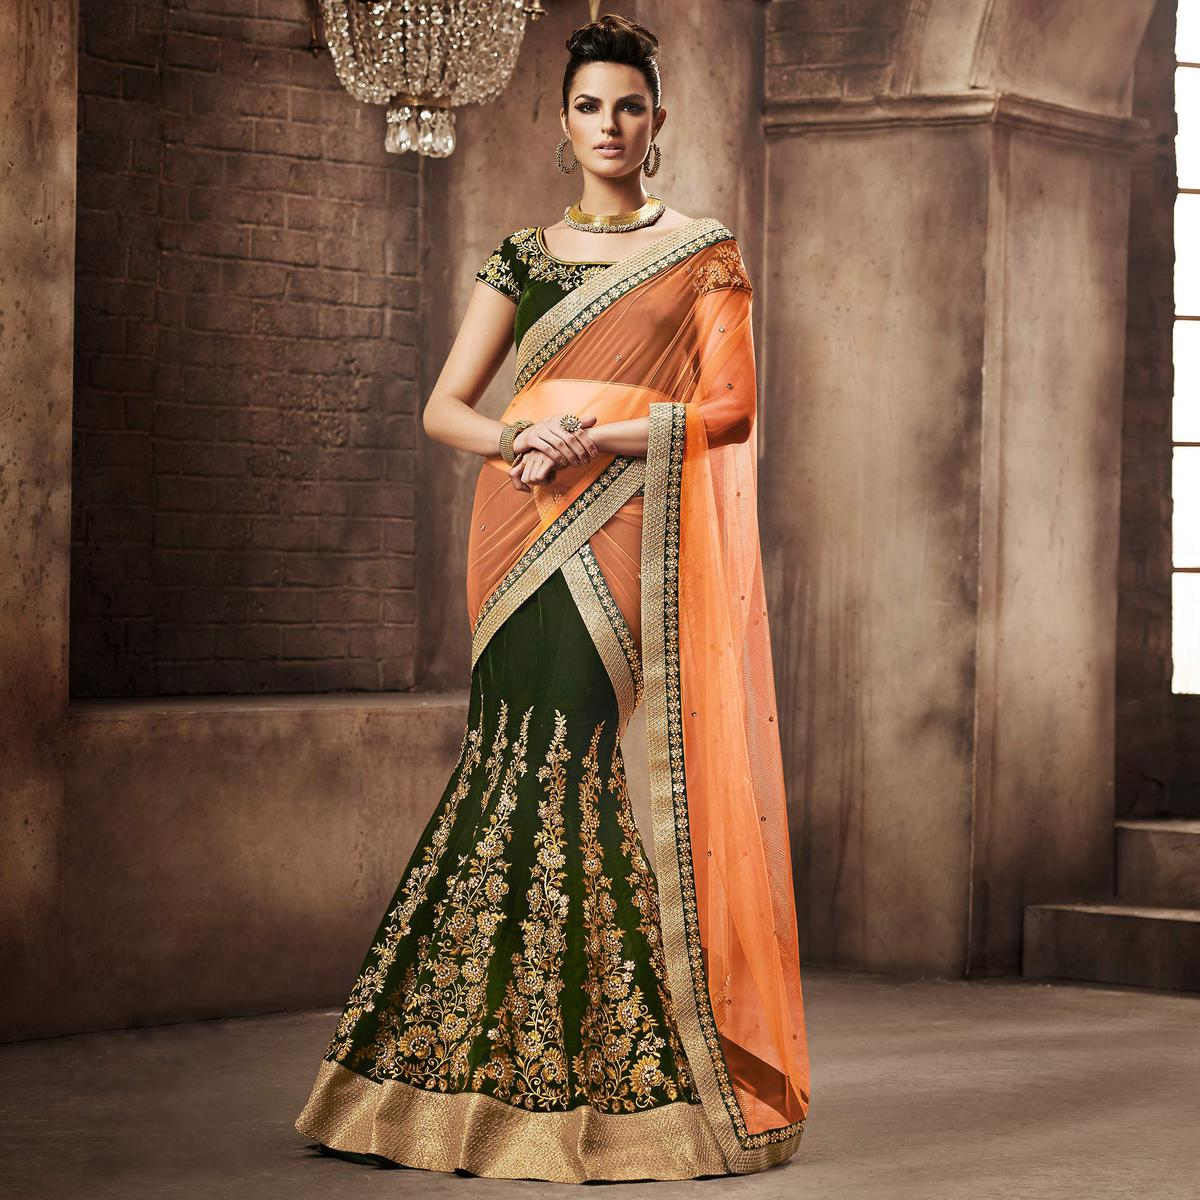 NAKKASHI - Marvellous Green Colored Party Wear Embroidered Velvet Lehenga Choli